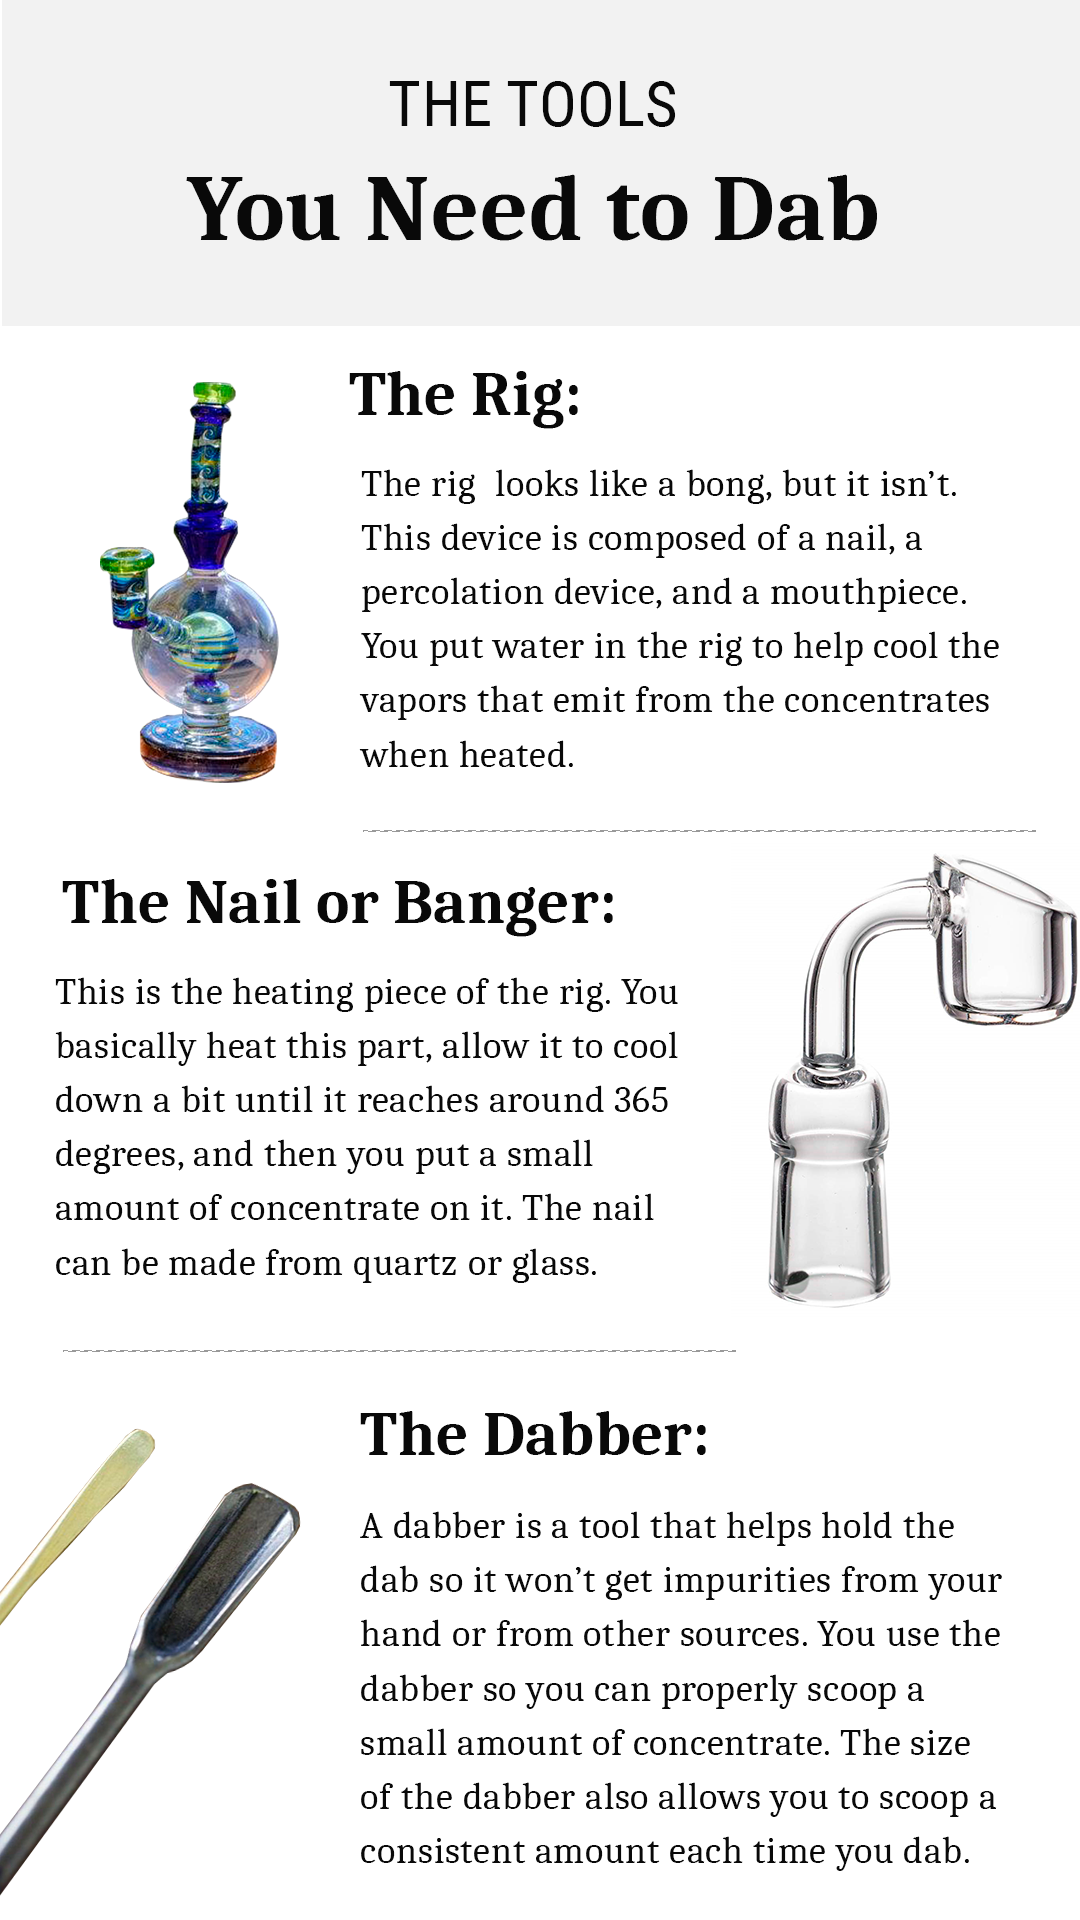 What you need to dab